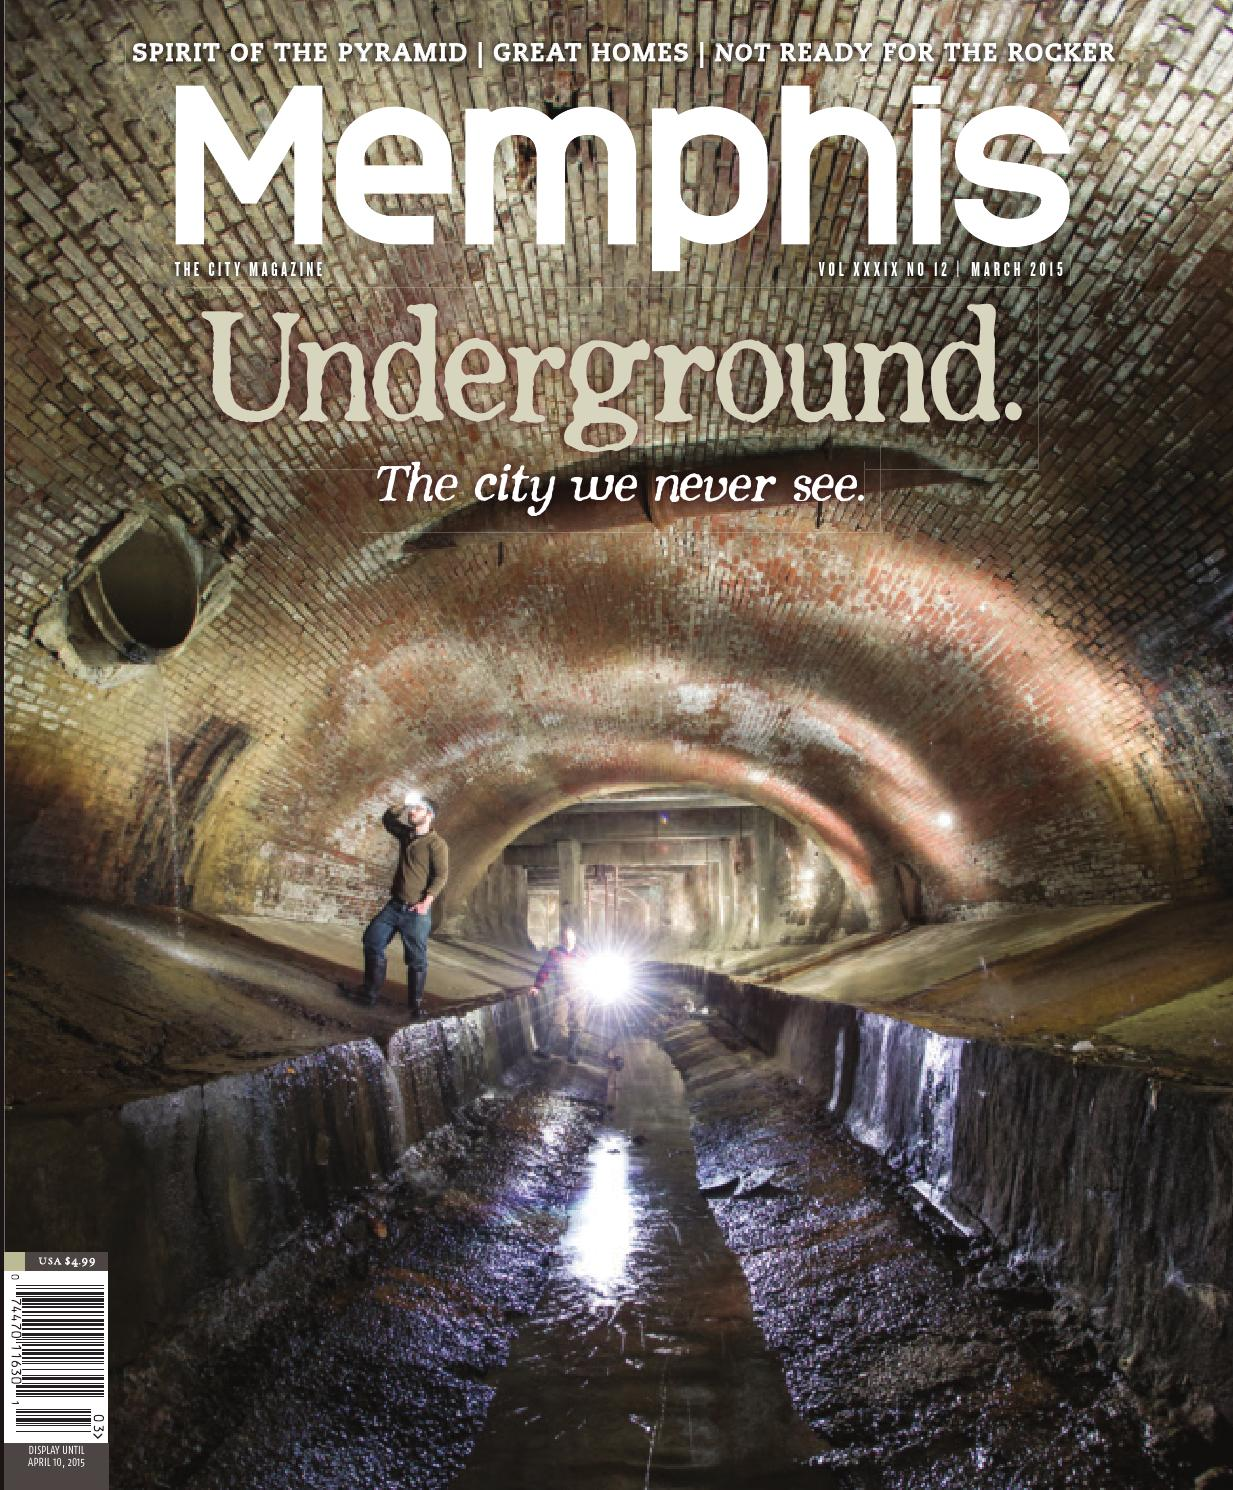 Memphis Magazine March 2015 by Contemporary Media - issuu